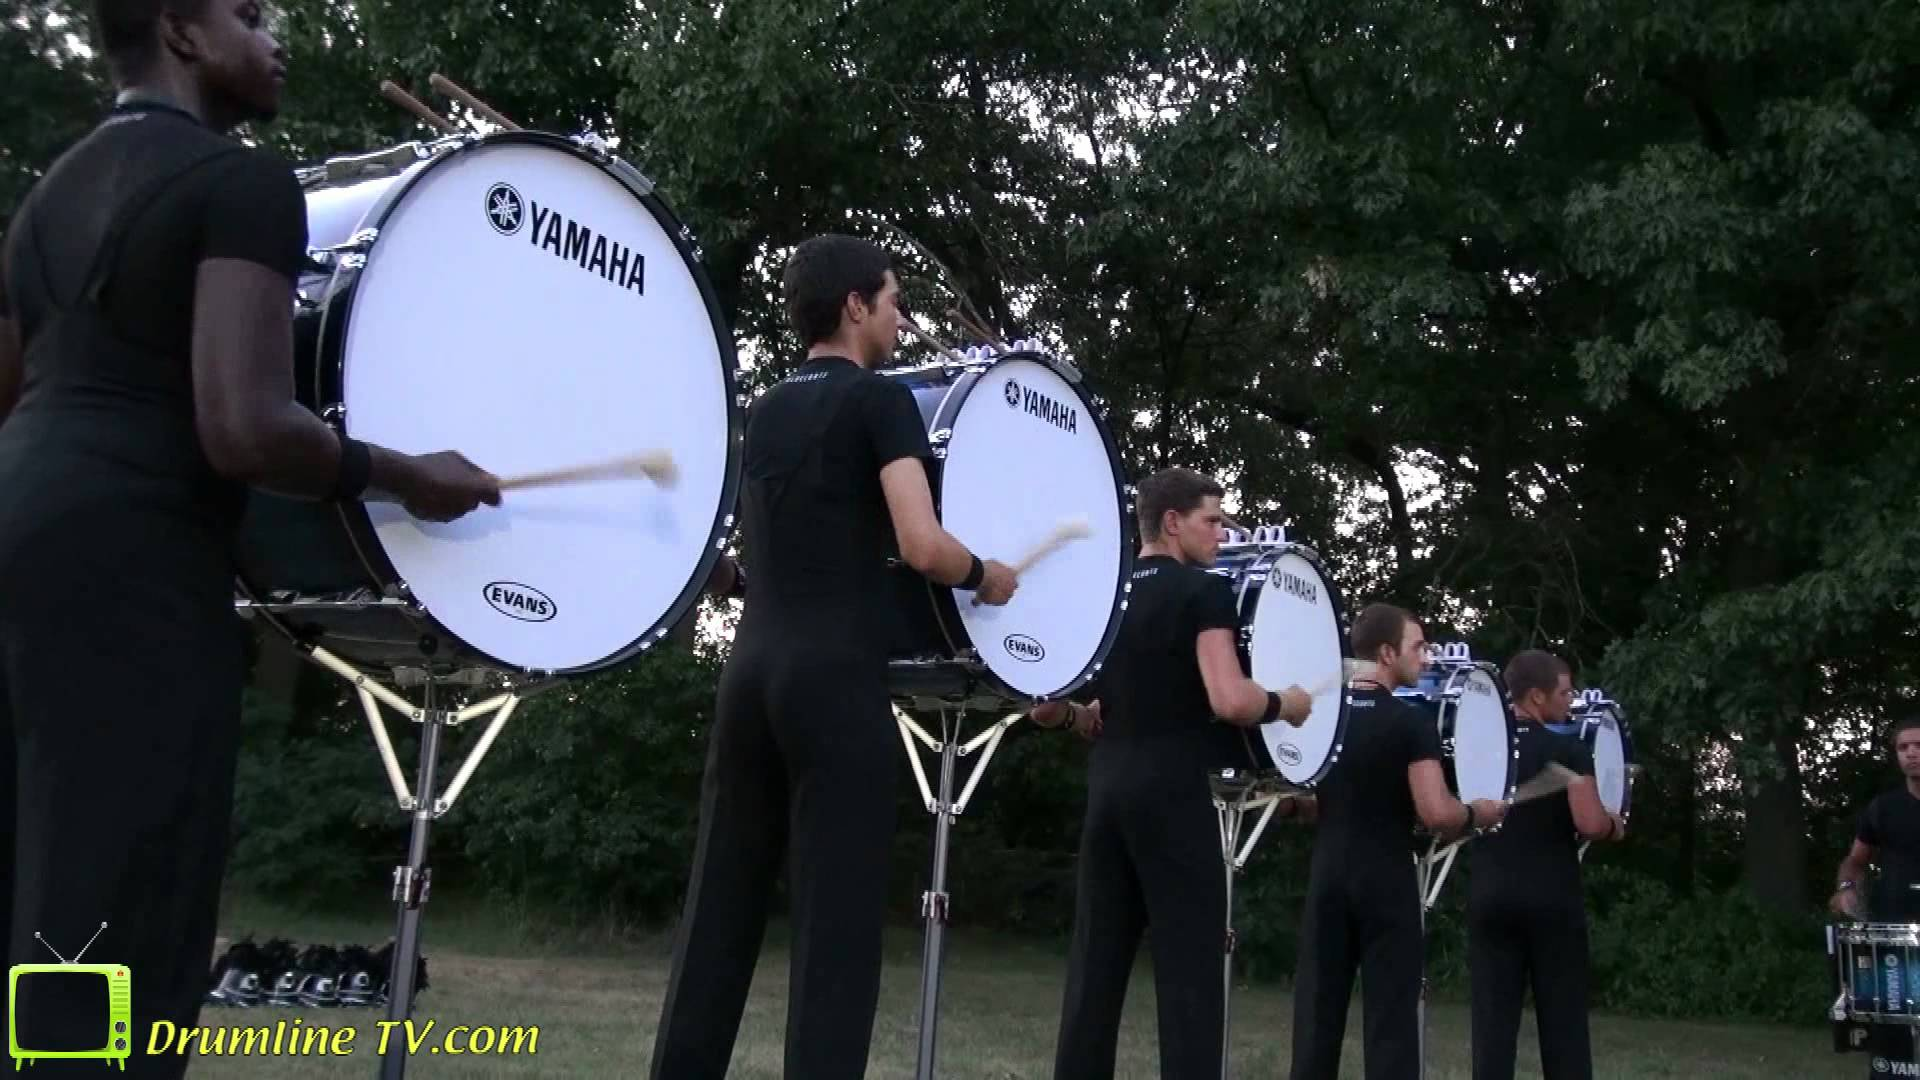 Bluecoats Drumline 2012 – Pageant of Drums Show – Michigan City, Indiana 6-30-2012